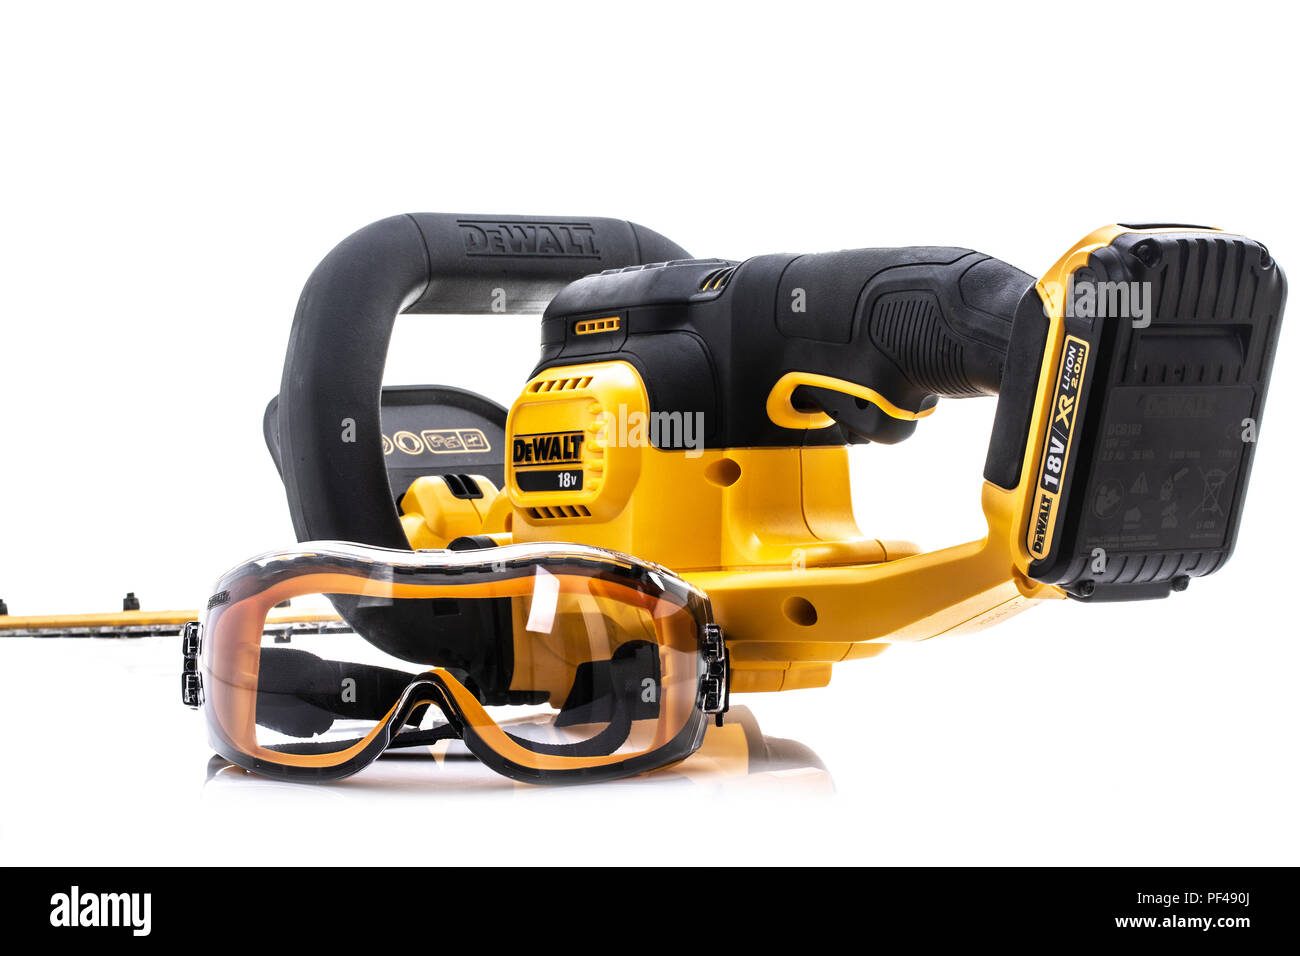 SWINDON, UK - AUGUST 19, 2018: DeWalt cordless Hedge Trimmer and safety glasses on a white background - Stock Image